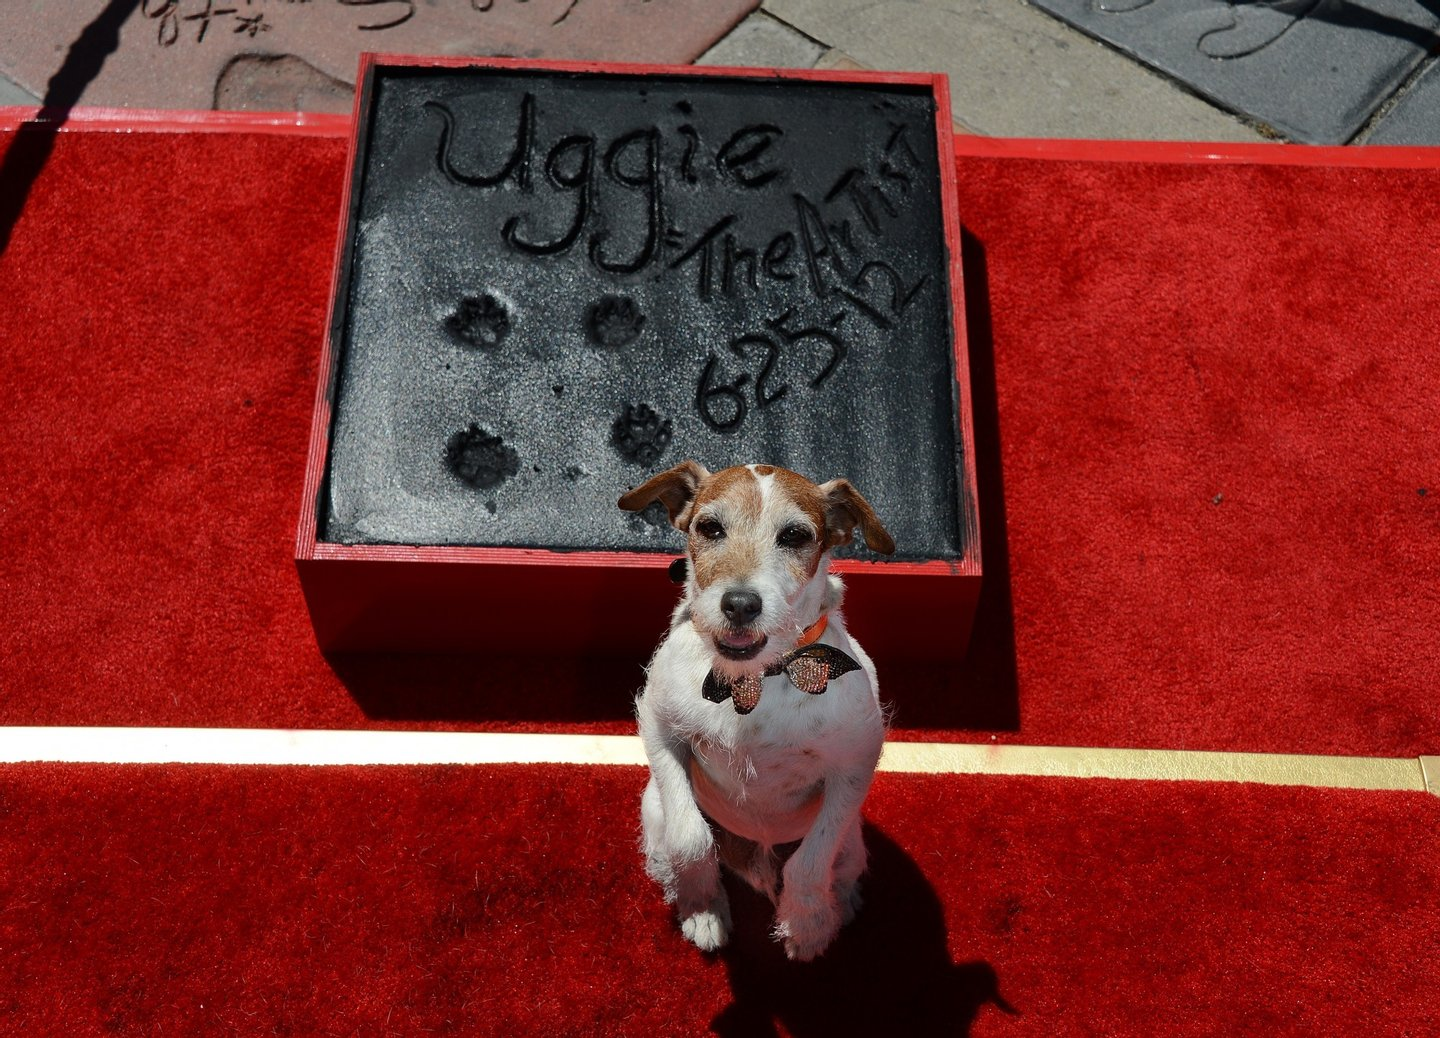 """Uggie, the dog who starred in the Academy Award-winning film """"The Artist,"""" is honored with a hand and paw print ceremony outside Grauman's Chinese Theatre in Hollywood, California, June 25, 2012. The ceremony marked Uggie's retirement from acting.    AFP PHOTO/ROBYN BECK        (Photo credit should read ROBYN BECK/AFP/GettyImages)"""